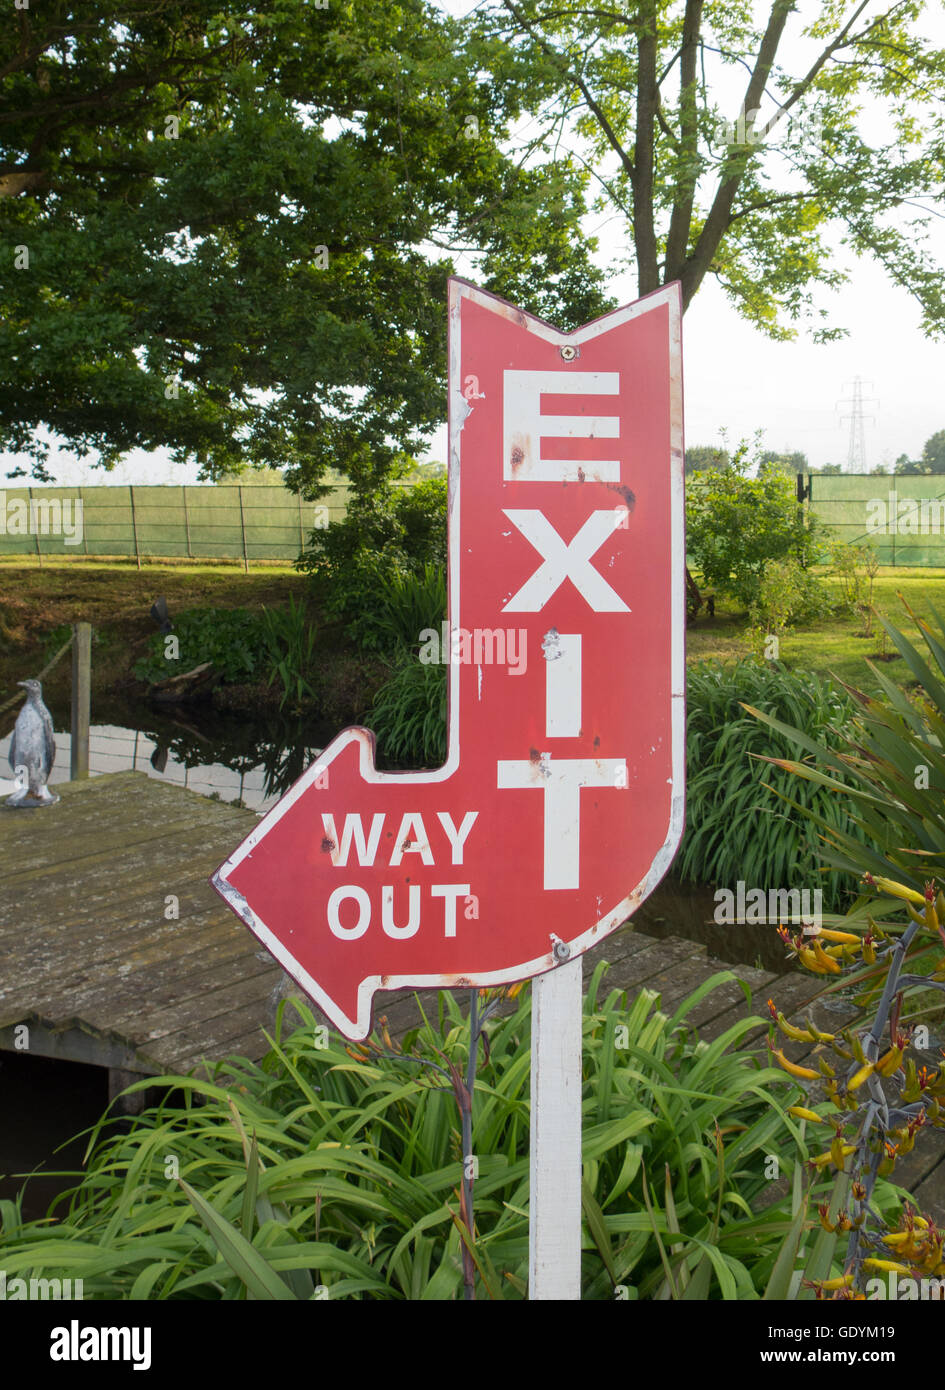 'Exit' and 'Way Out' Sign in a Rural Location in Maldon,Essex,England,UK - Stock Image